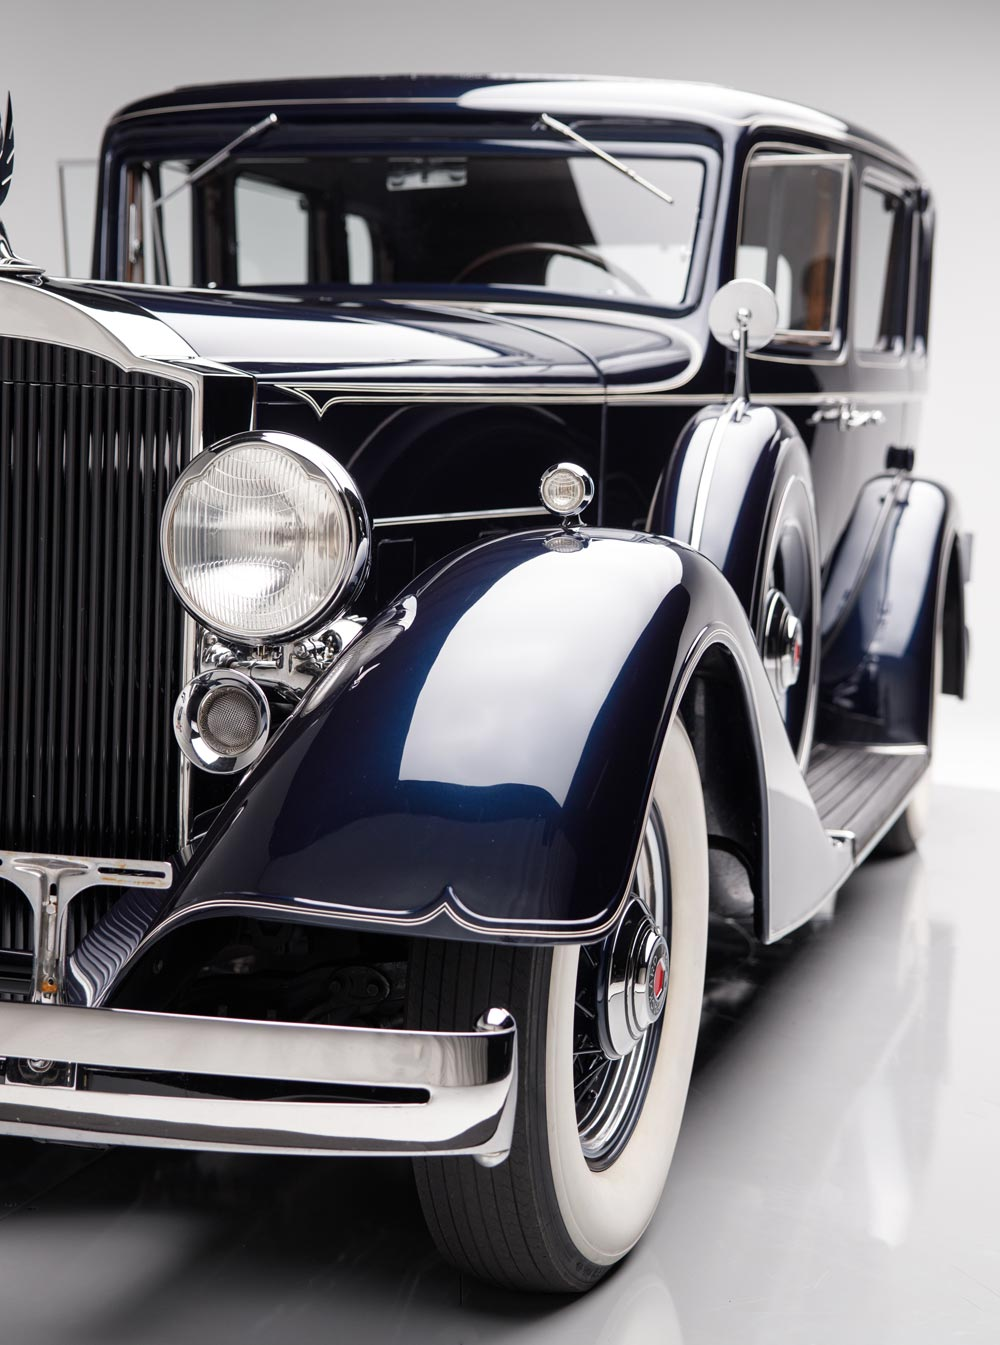 1934 Packard Eight 1100 - The JBS Collection